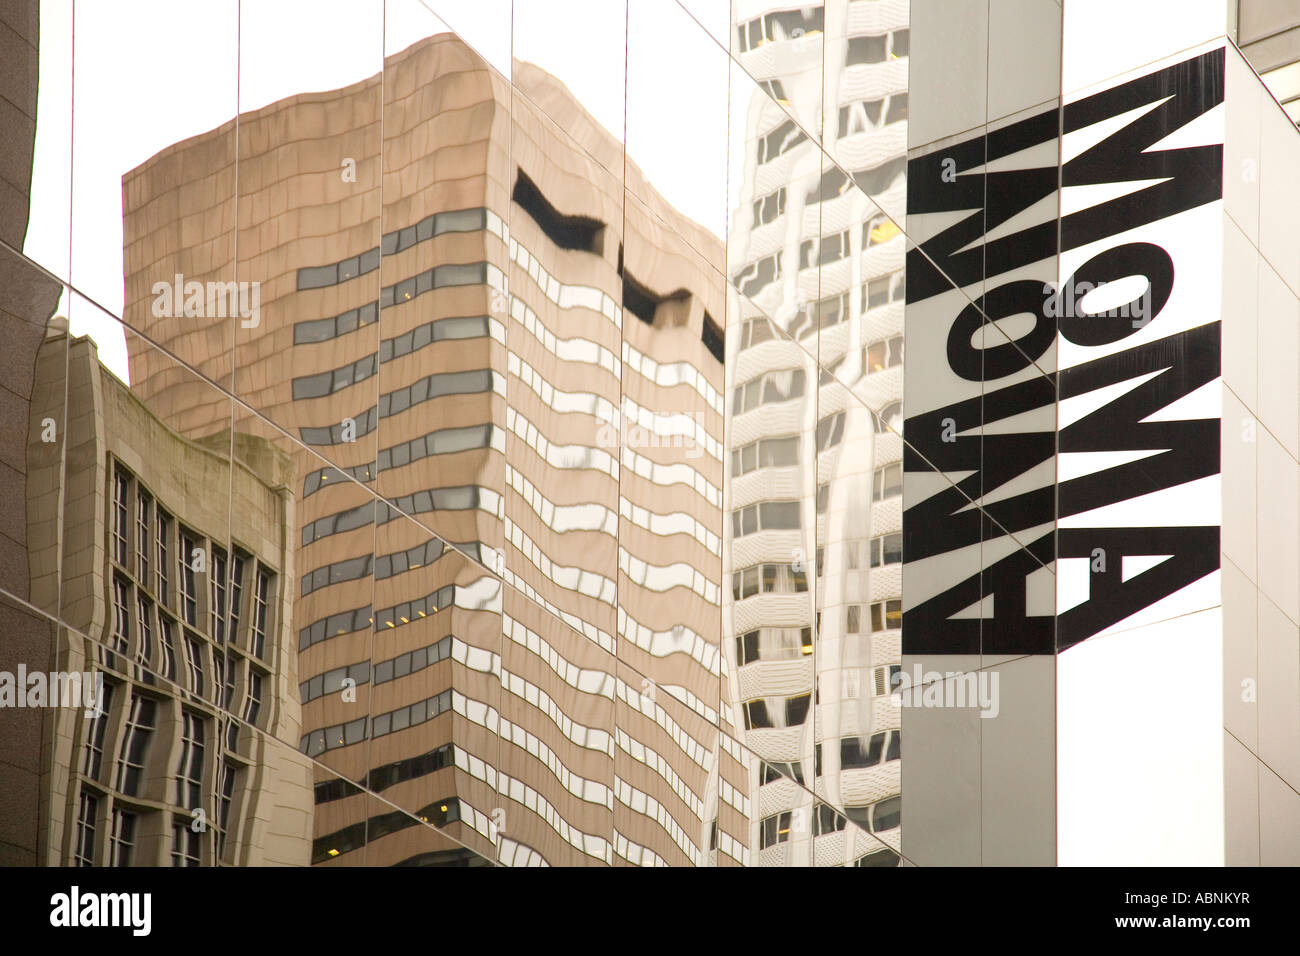 moma museum of modern art gallery sign in midtown manhattan new york stock photo royalty free. Black Bedroom Furniture Sets. Home Design Ideas